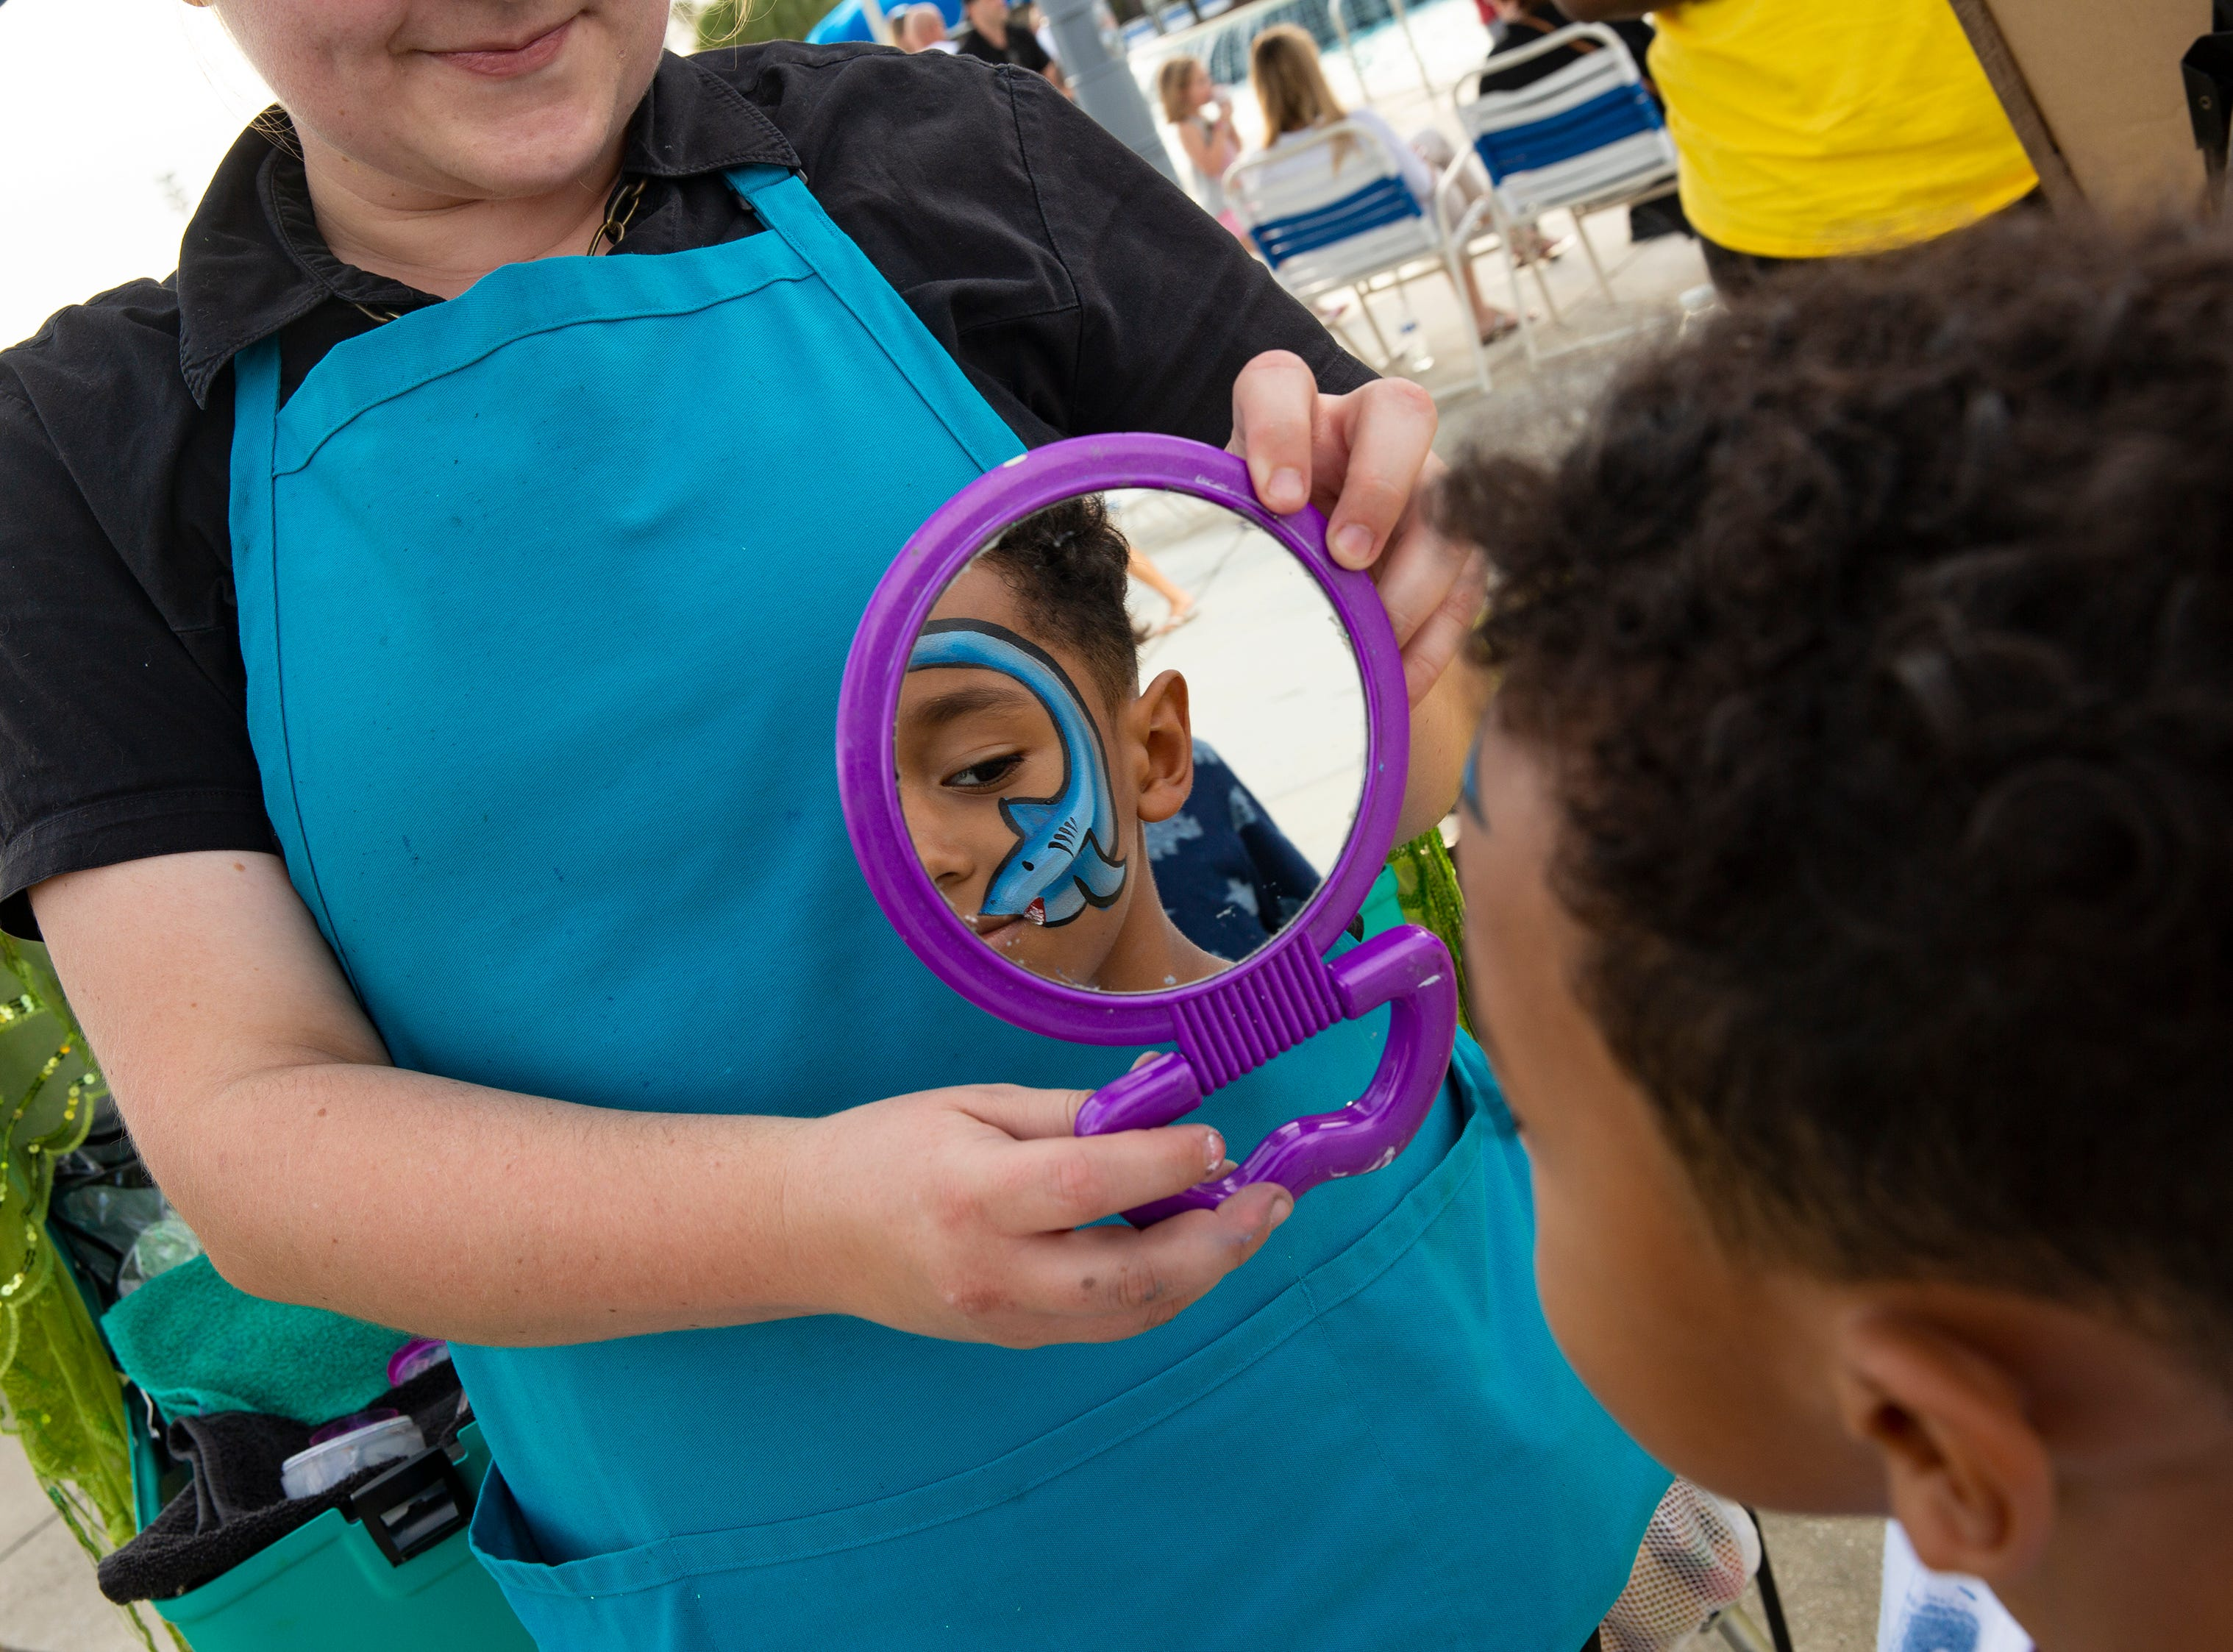 Carter Stanislaus, 5, of South Fort Myers admires his new shark face painting by Heather Payne during the Great Naples Rubber Duck Race and Water Safety Festival on Saturday, Feb. 2, 2019, at the Sun-N-Fun Lagoon in East Naples.